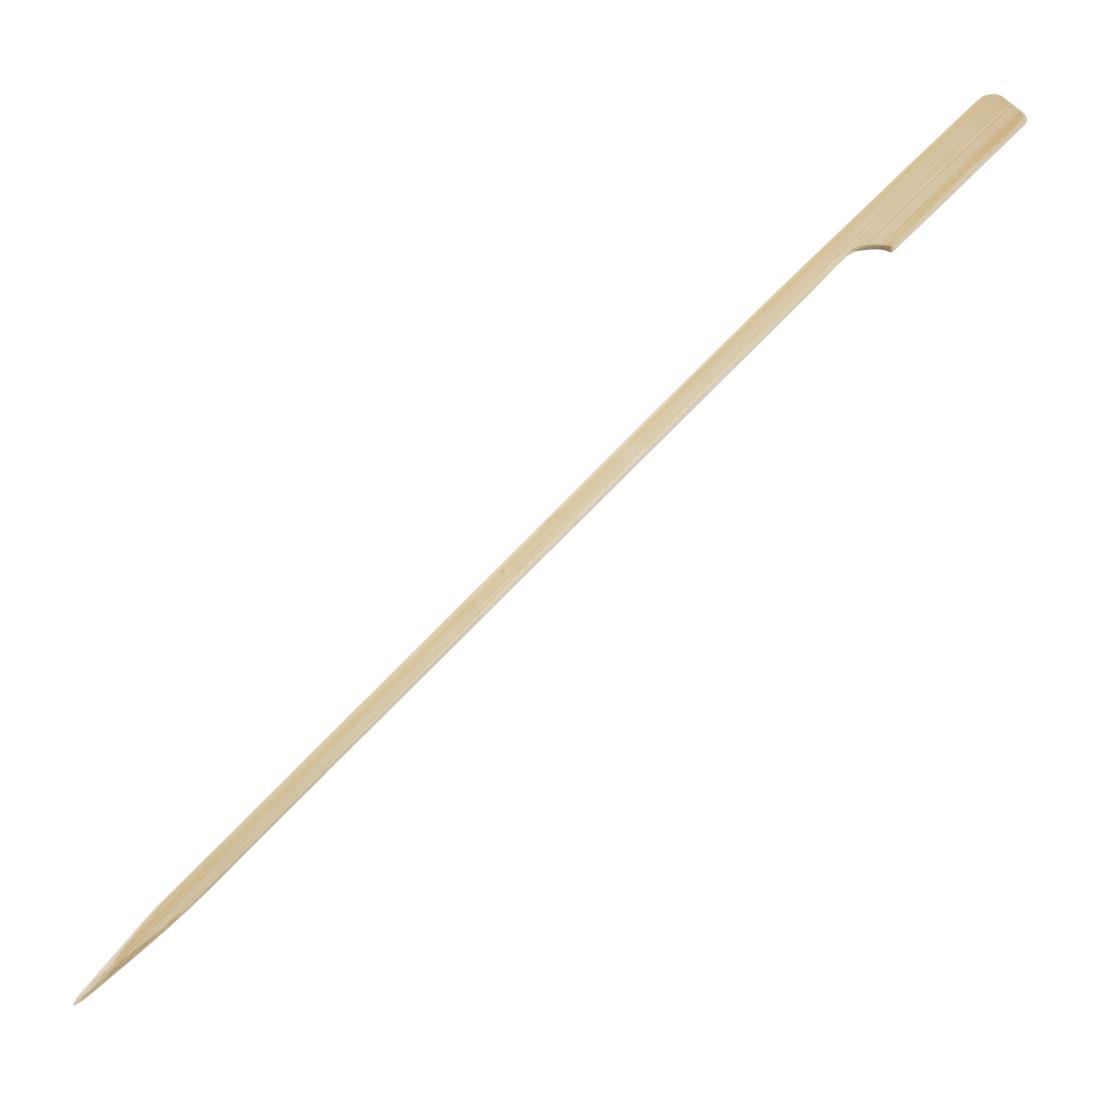 Fiesta Green Biodegradable Bamboo Paddle Skewers 240mm Pack of 100